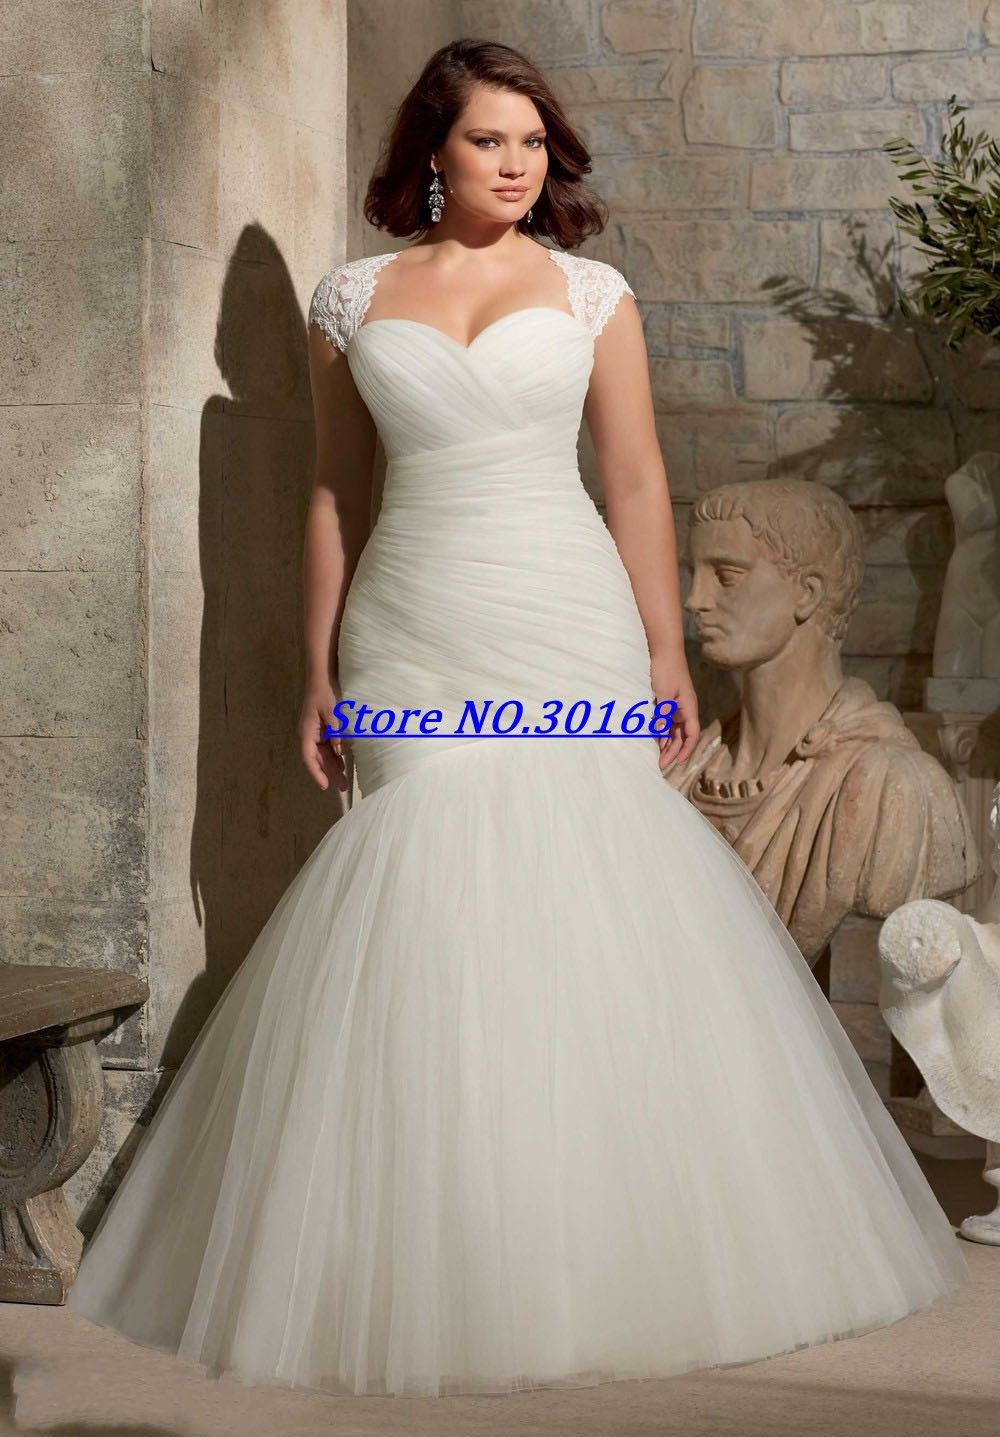 77 Wedding Dresses Wichita Ks Best Shapewear For Dress Check More At Http